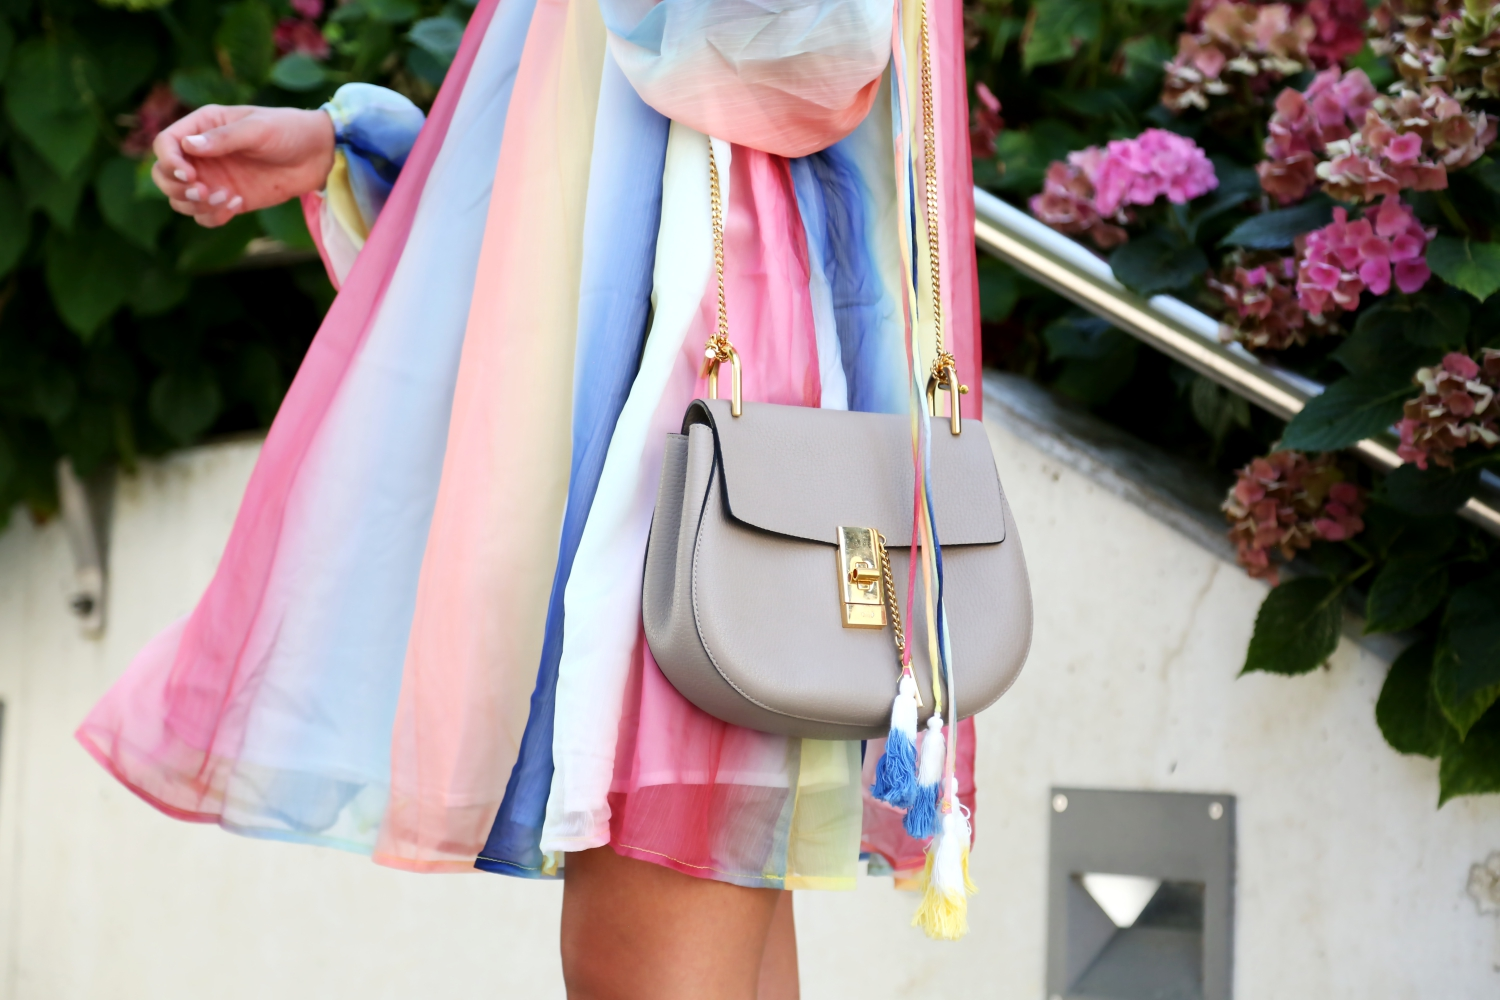 outfit-details-chloe-drew-bag-summer-look